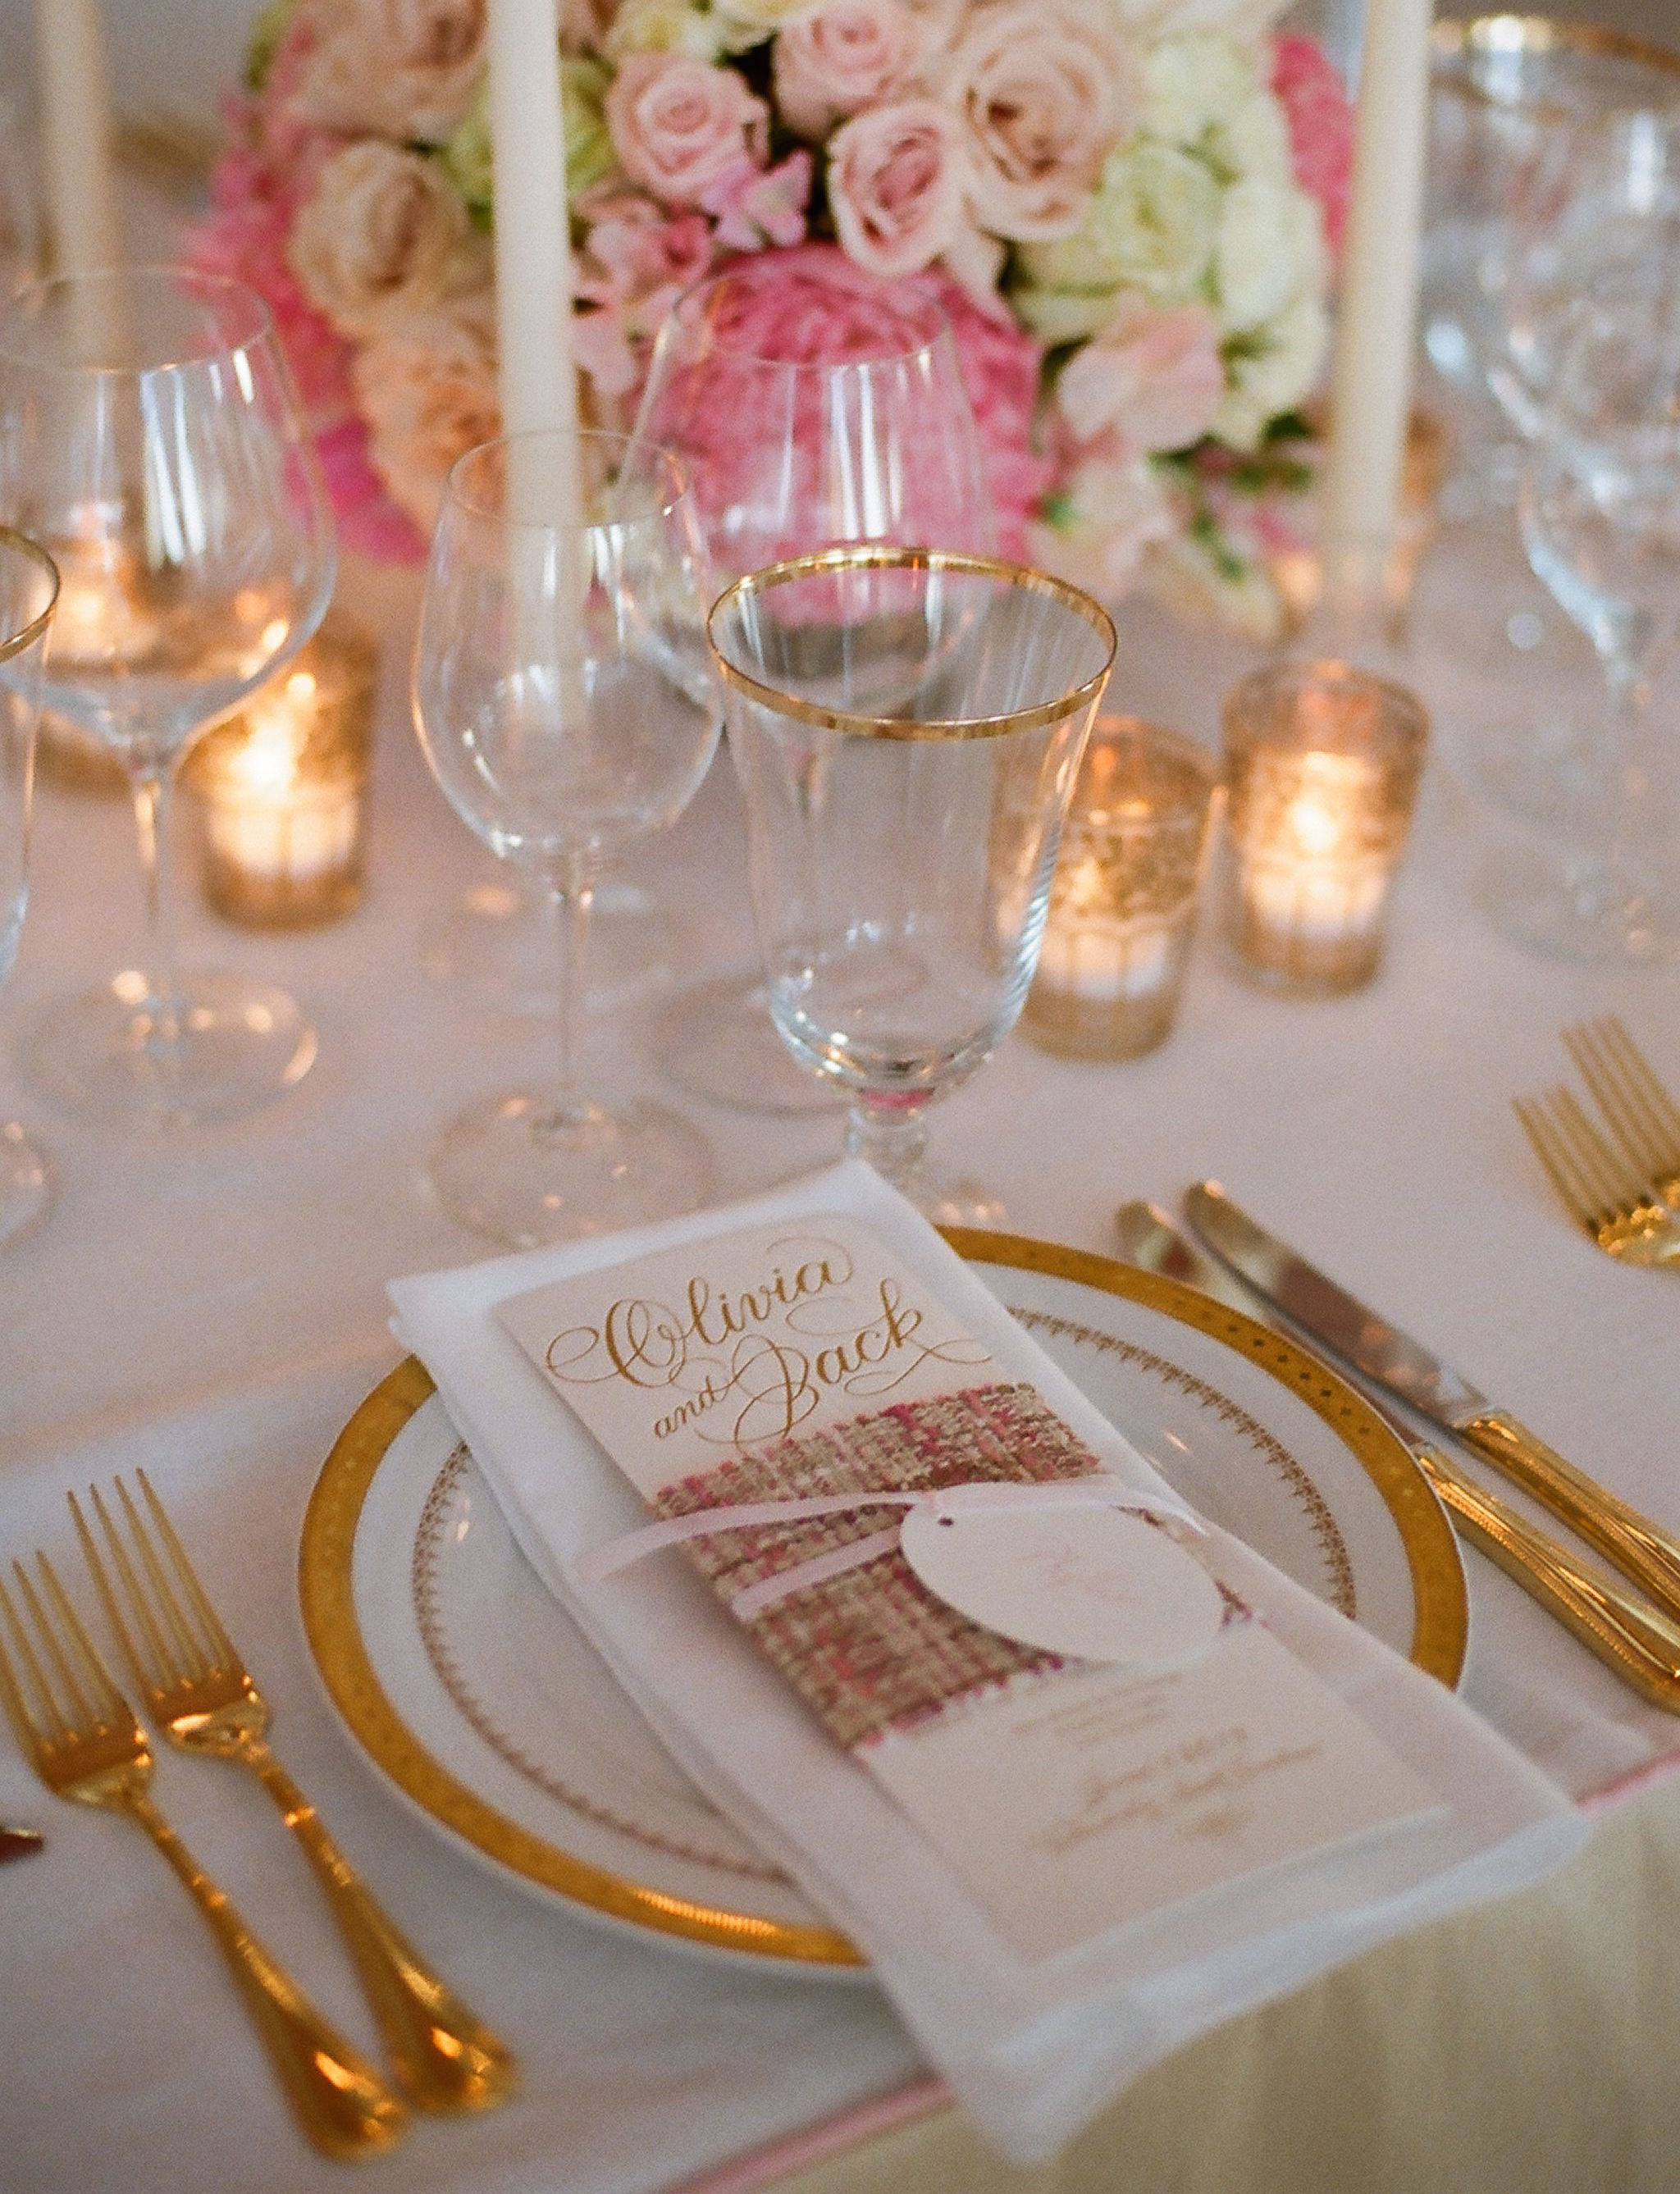 Gold flatware and pink and white wedding